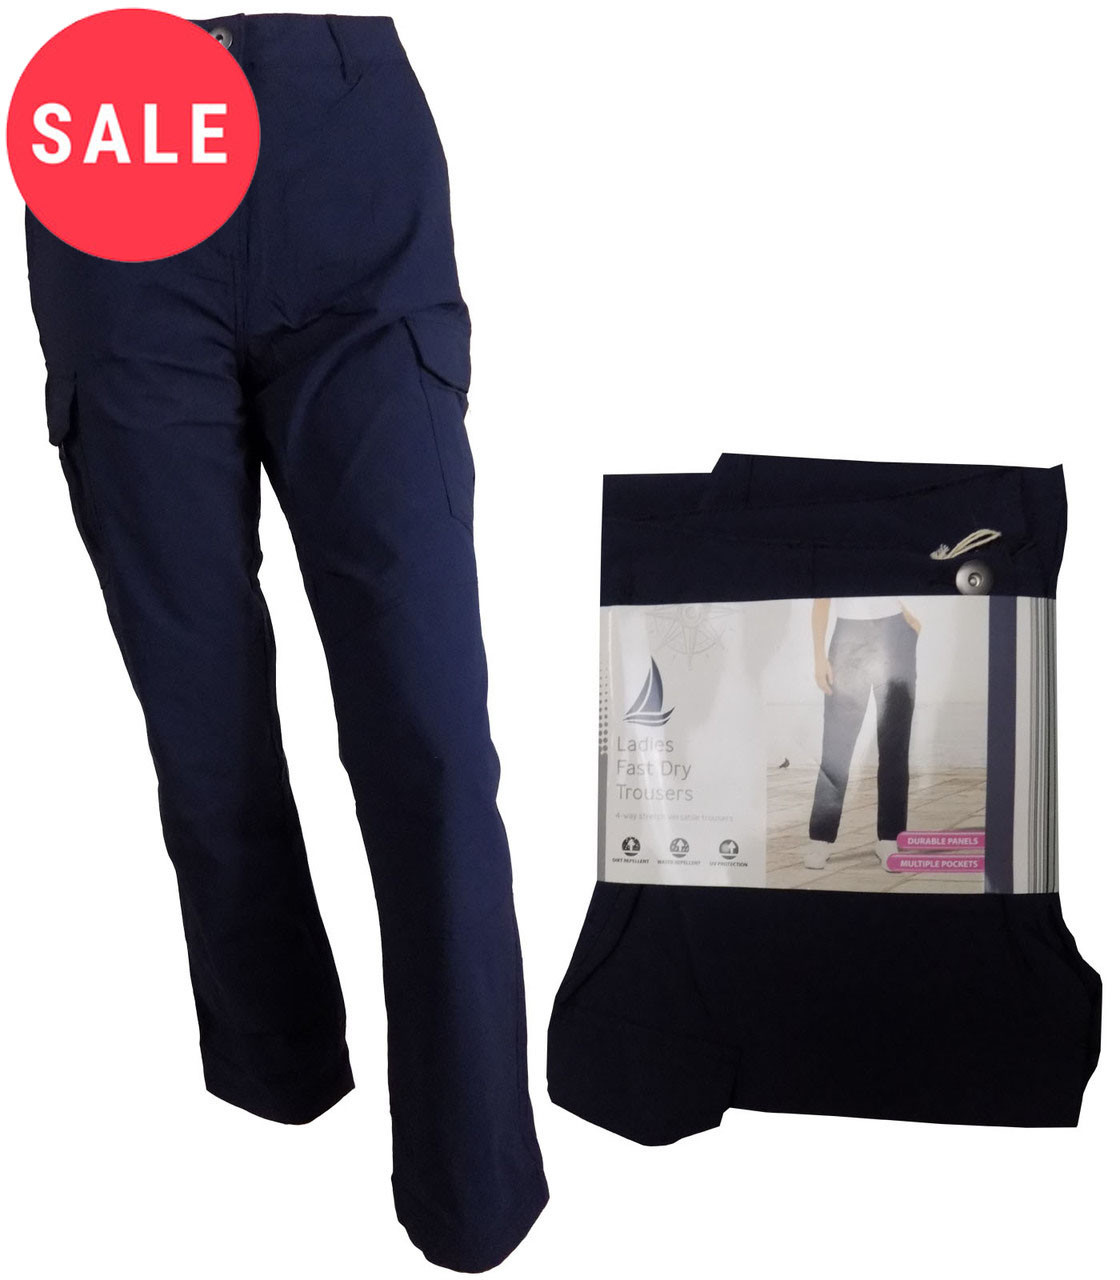 d081592f Ex Major High Street Ladies Climbing Trouser | Rivers Trading | Ex  Chainstore Clothing Suppliers | Clothing Wholesalers | Ex High Street |  Wholesale ...